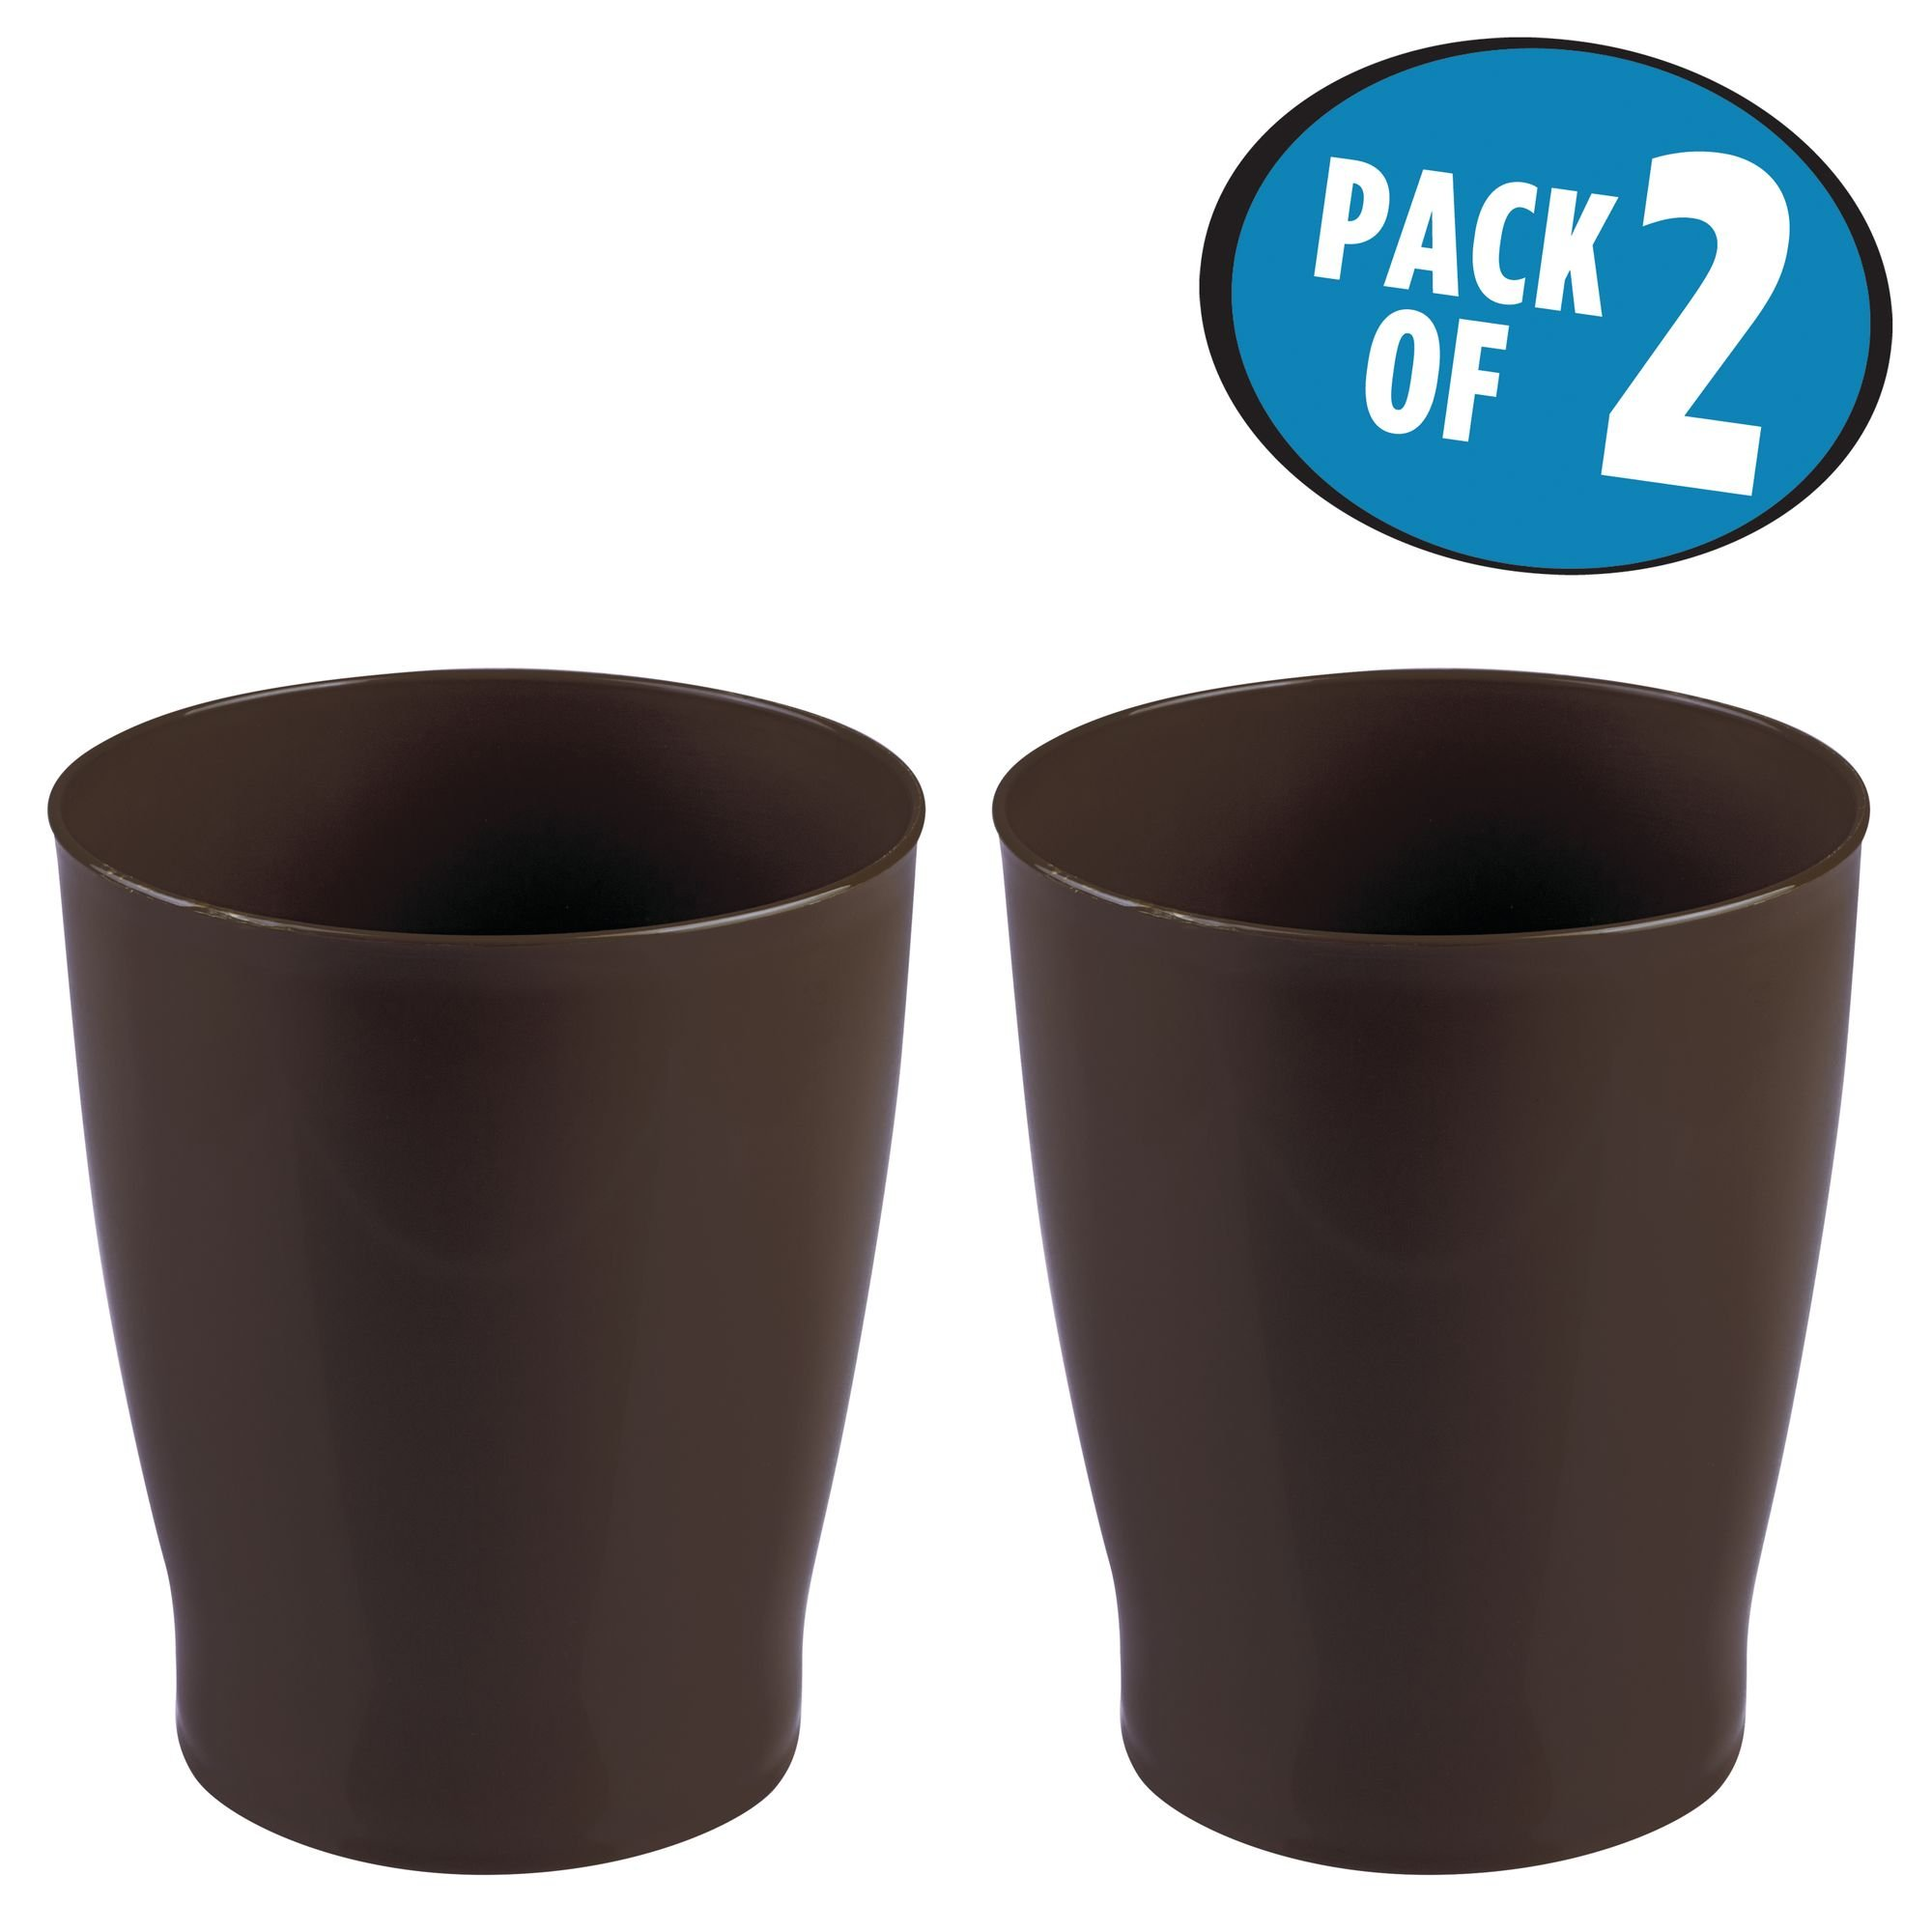 mDesign Slim Round Plastic Small Trash Can Wastebasket, Garbage Container Bin for Bathrooms, Powder Rooms, Kitchens, Home Offices, Kids Rooms - Pack of 2, Dark Brown